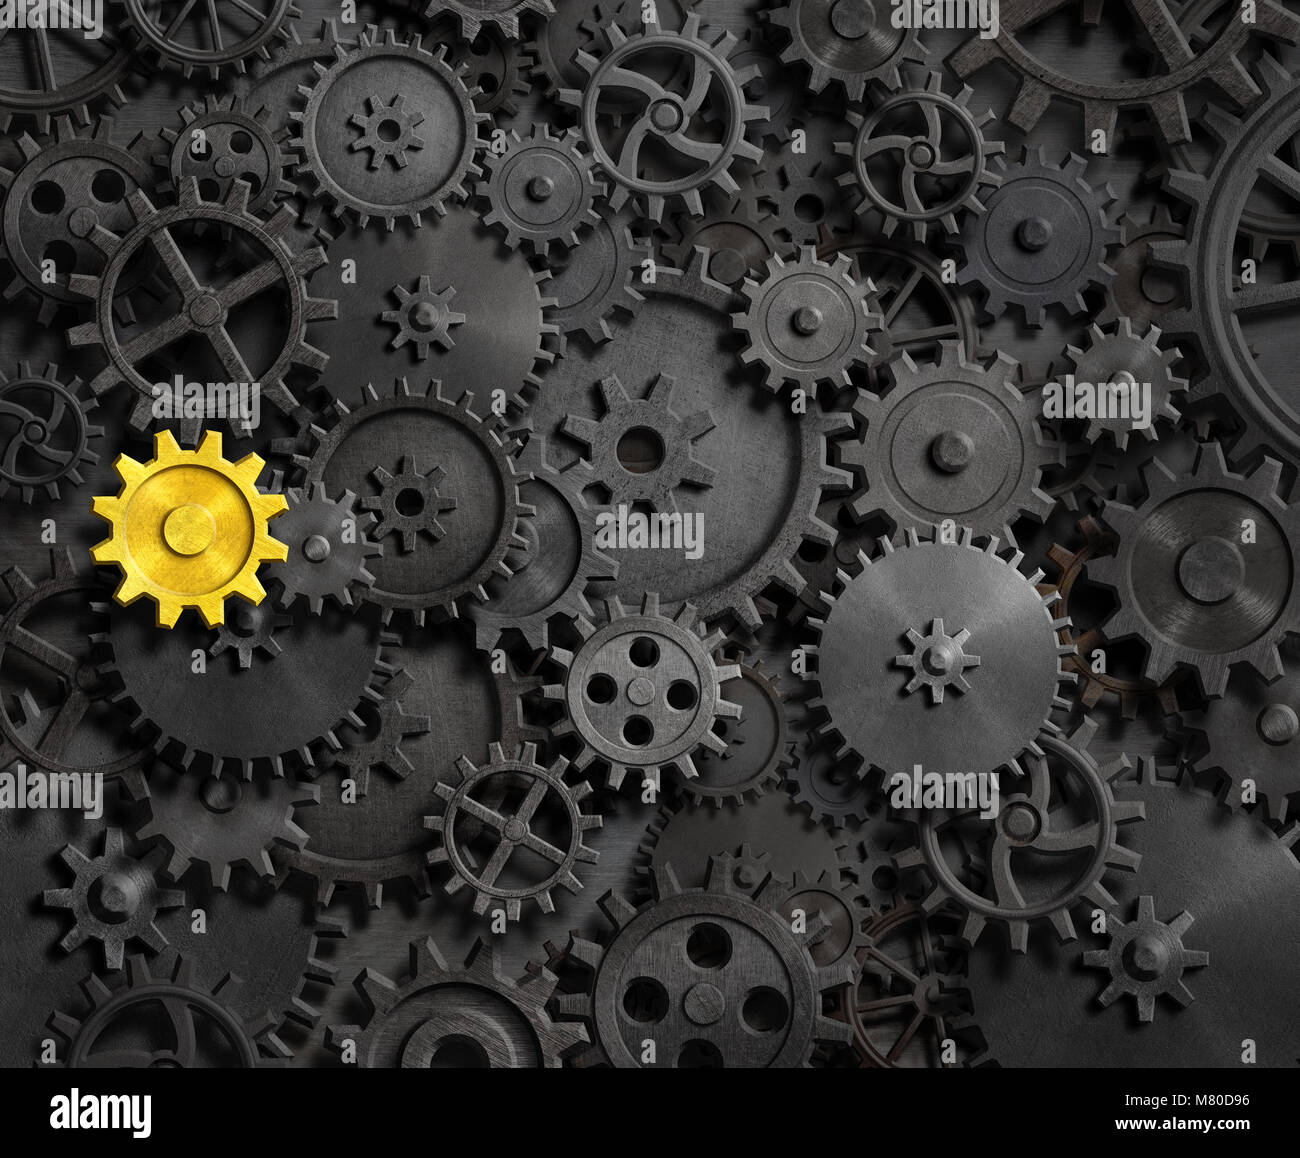 Old gears and cogs with gold one 3d illustration - Stock Image